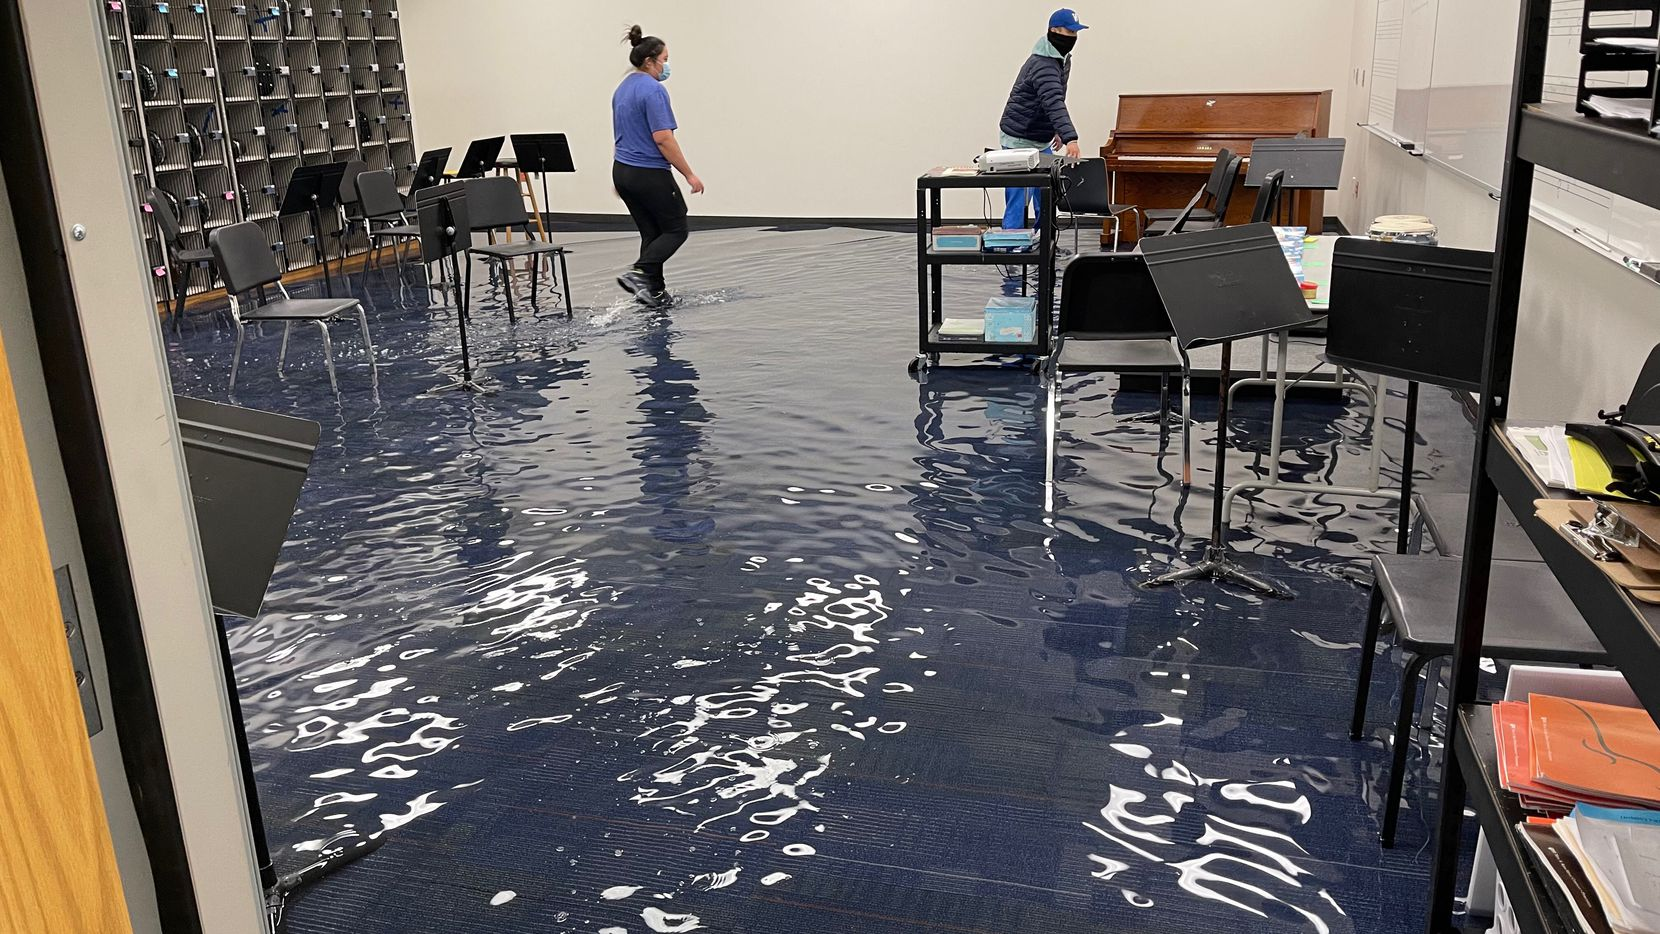 A band room is severely damaged with water after a pipe busted during the winter storm at E.D. Walker Middle School in Dallas last week.